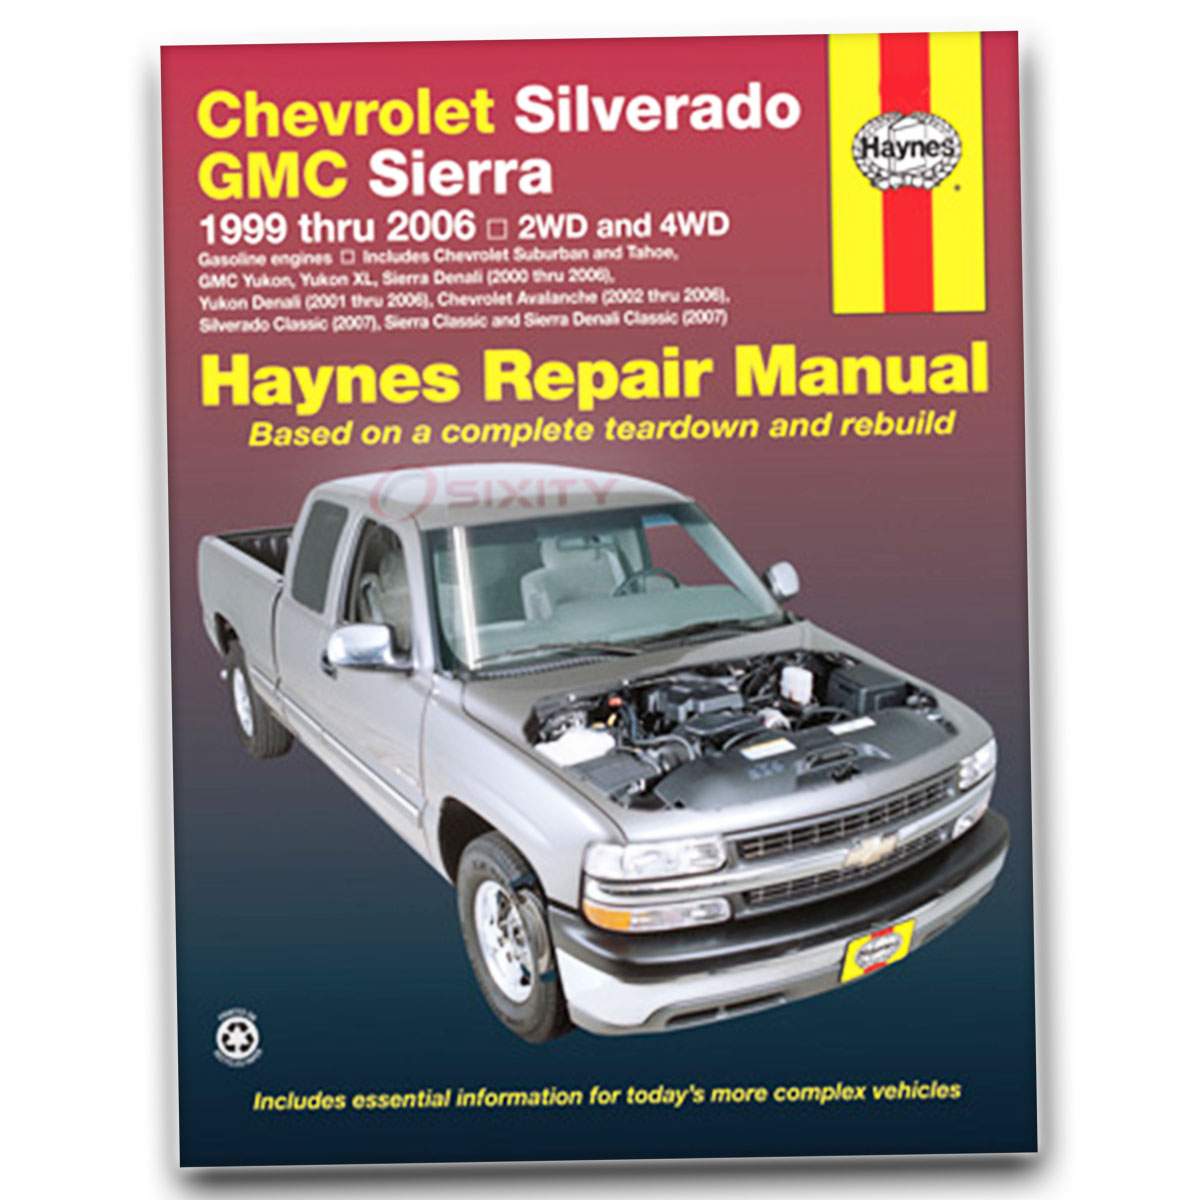 haynes repair manual for gmc sierra 2500 hd sle wt slt base shop rh ebay  com 2000 GMC Sierra 3500 2001 GMC Sierra 2500